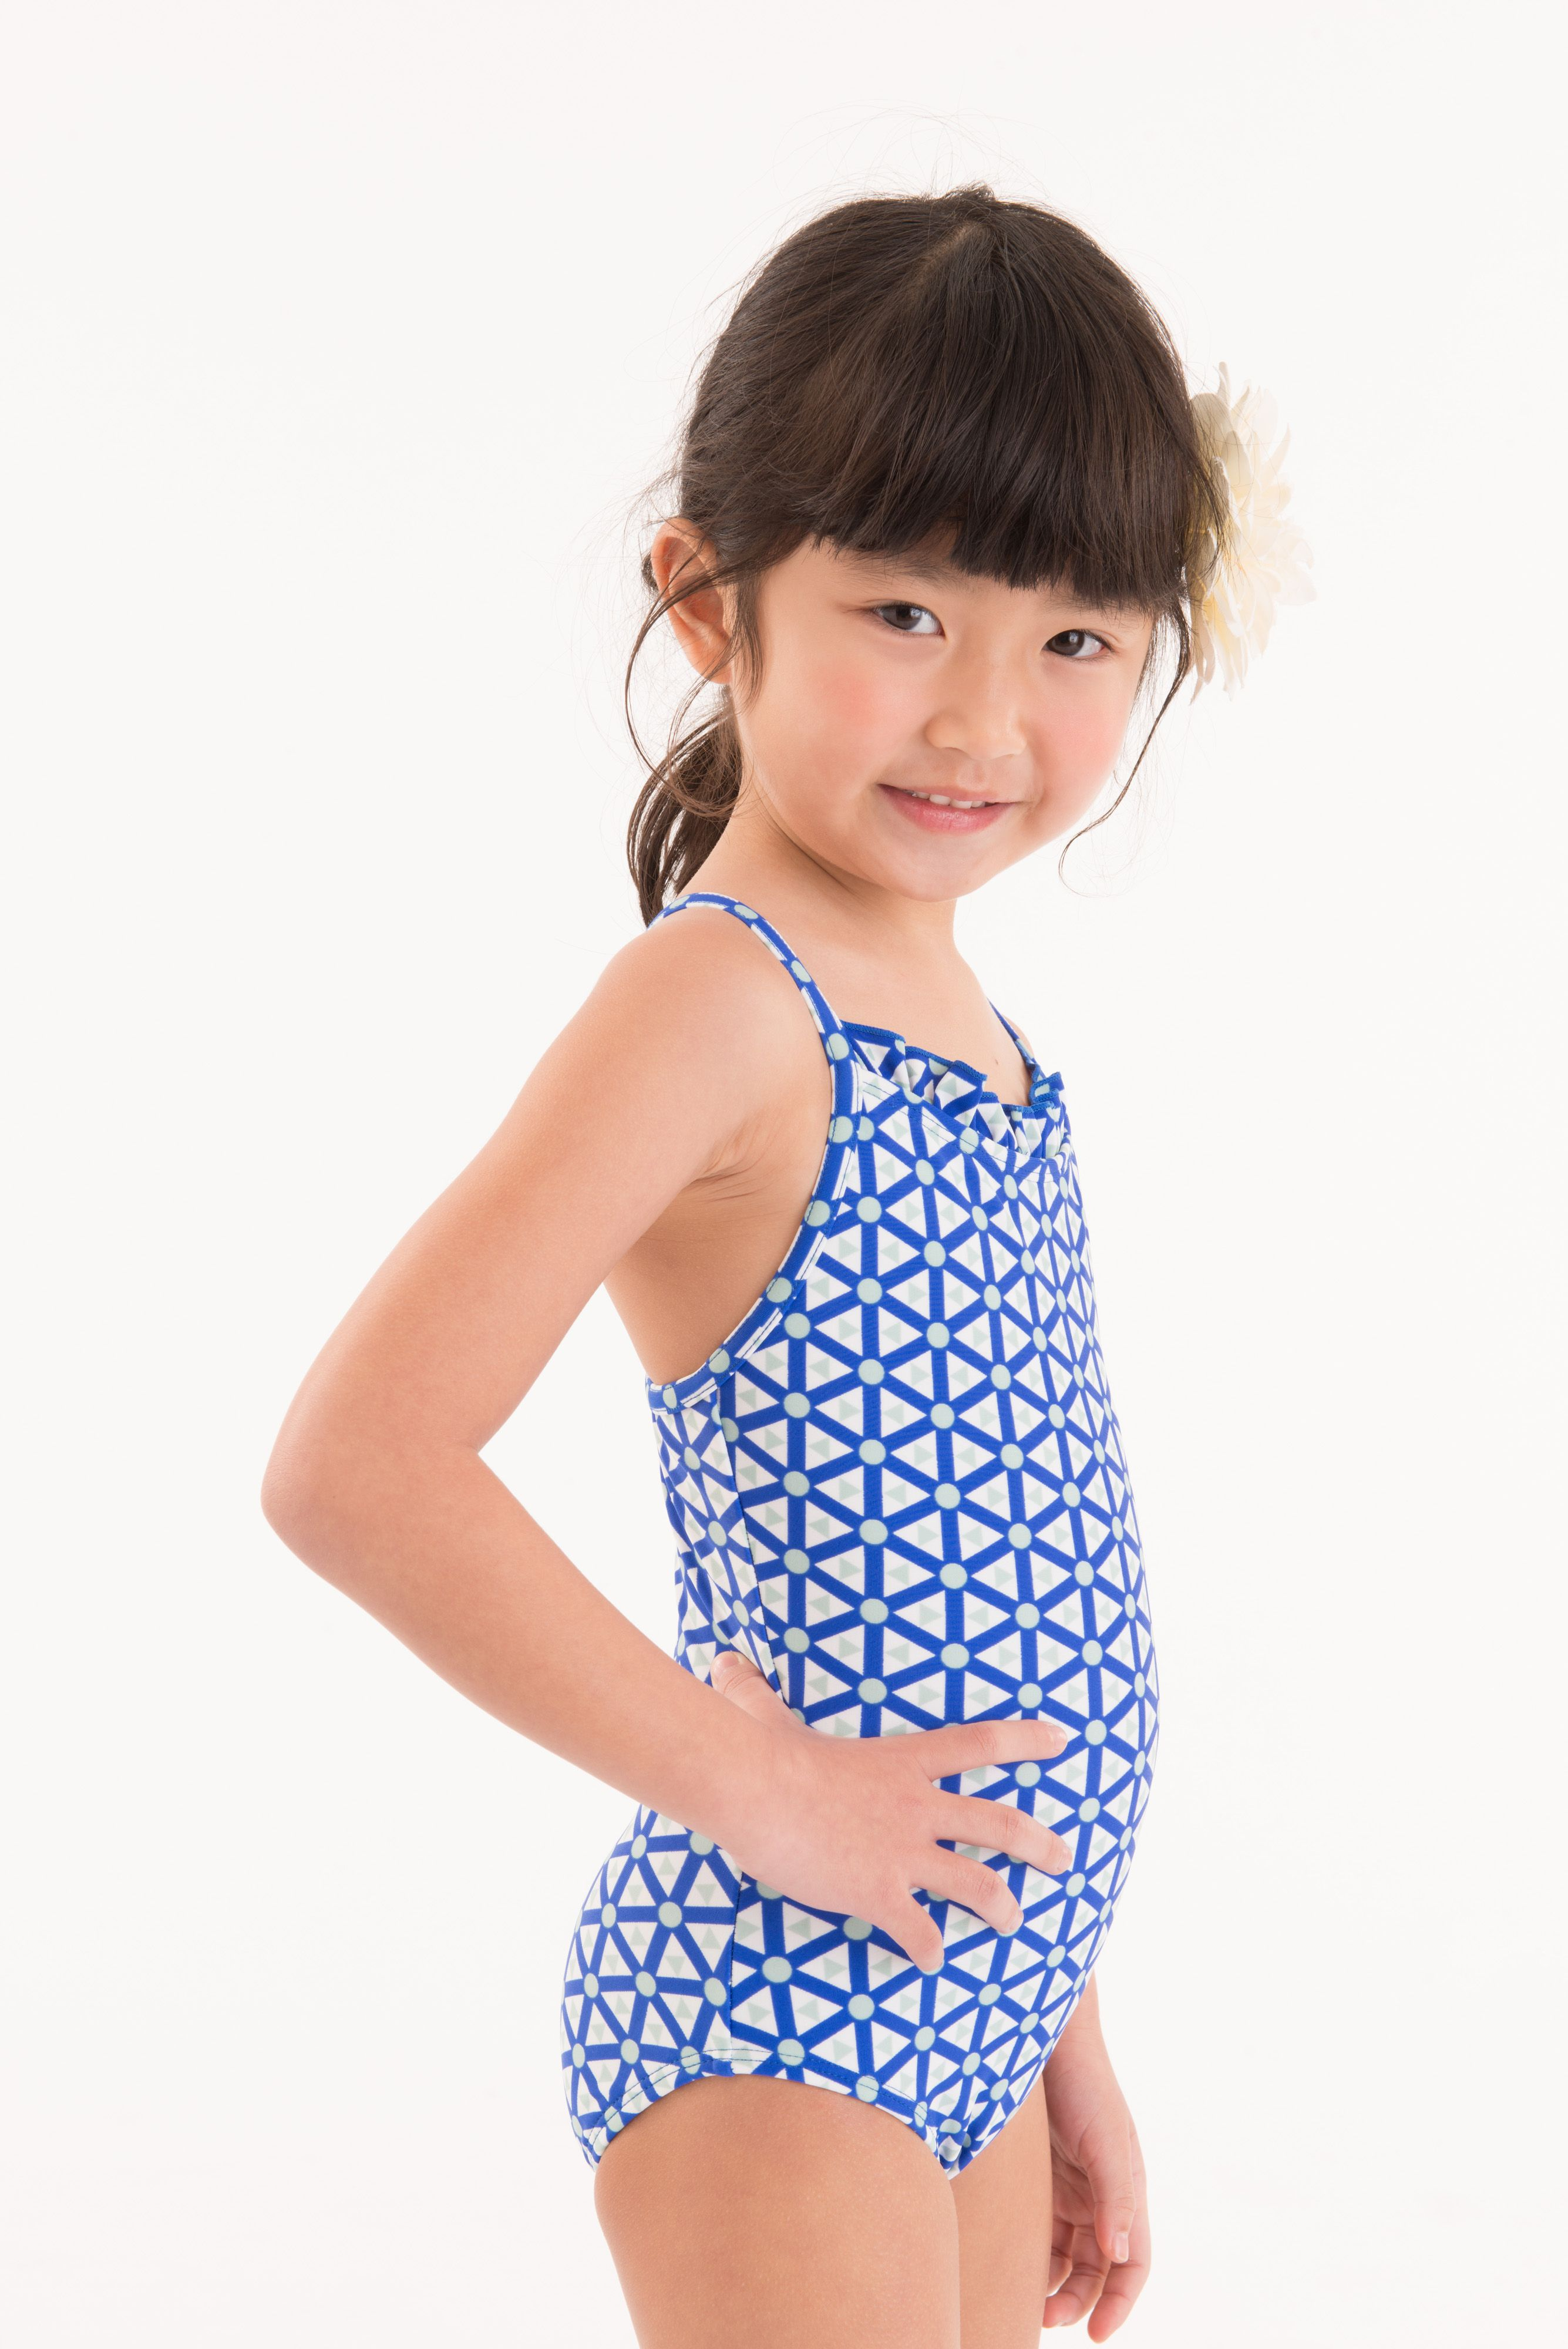 Matching Swimwear For Boys Girl And Adults Ruffle Neck One Piece In -3379